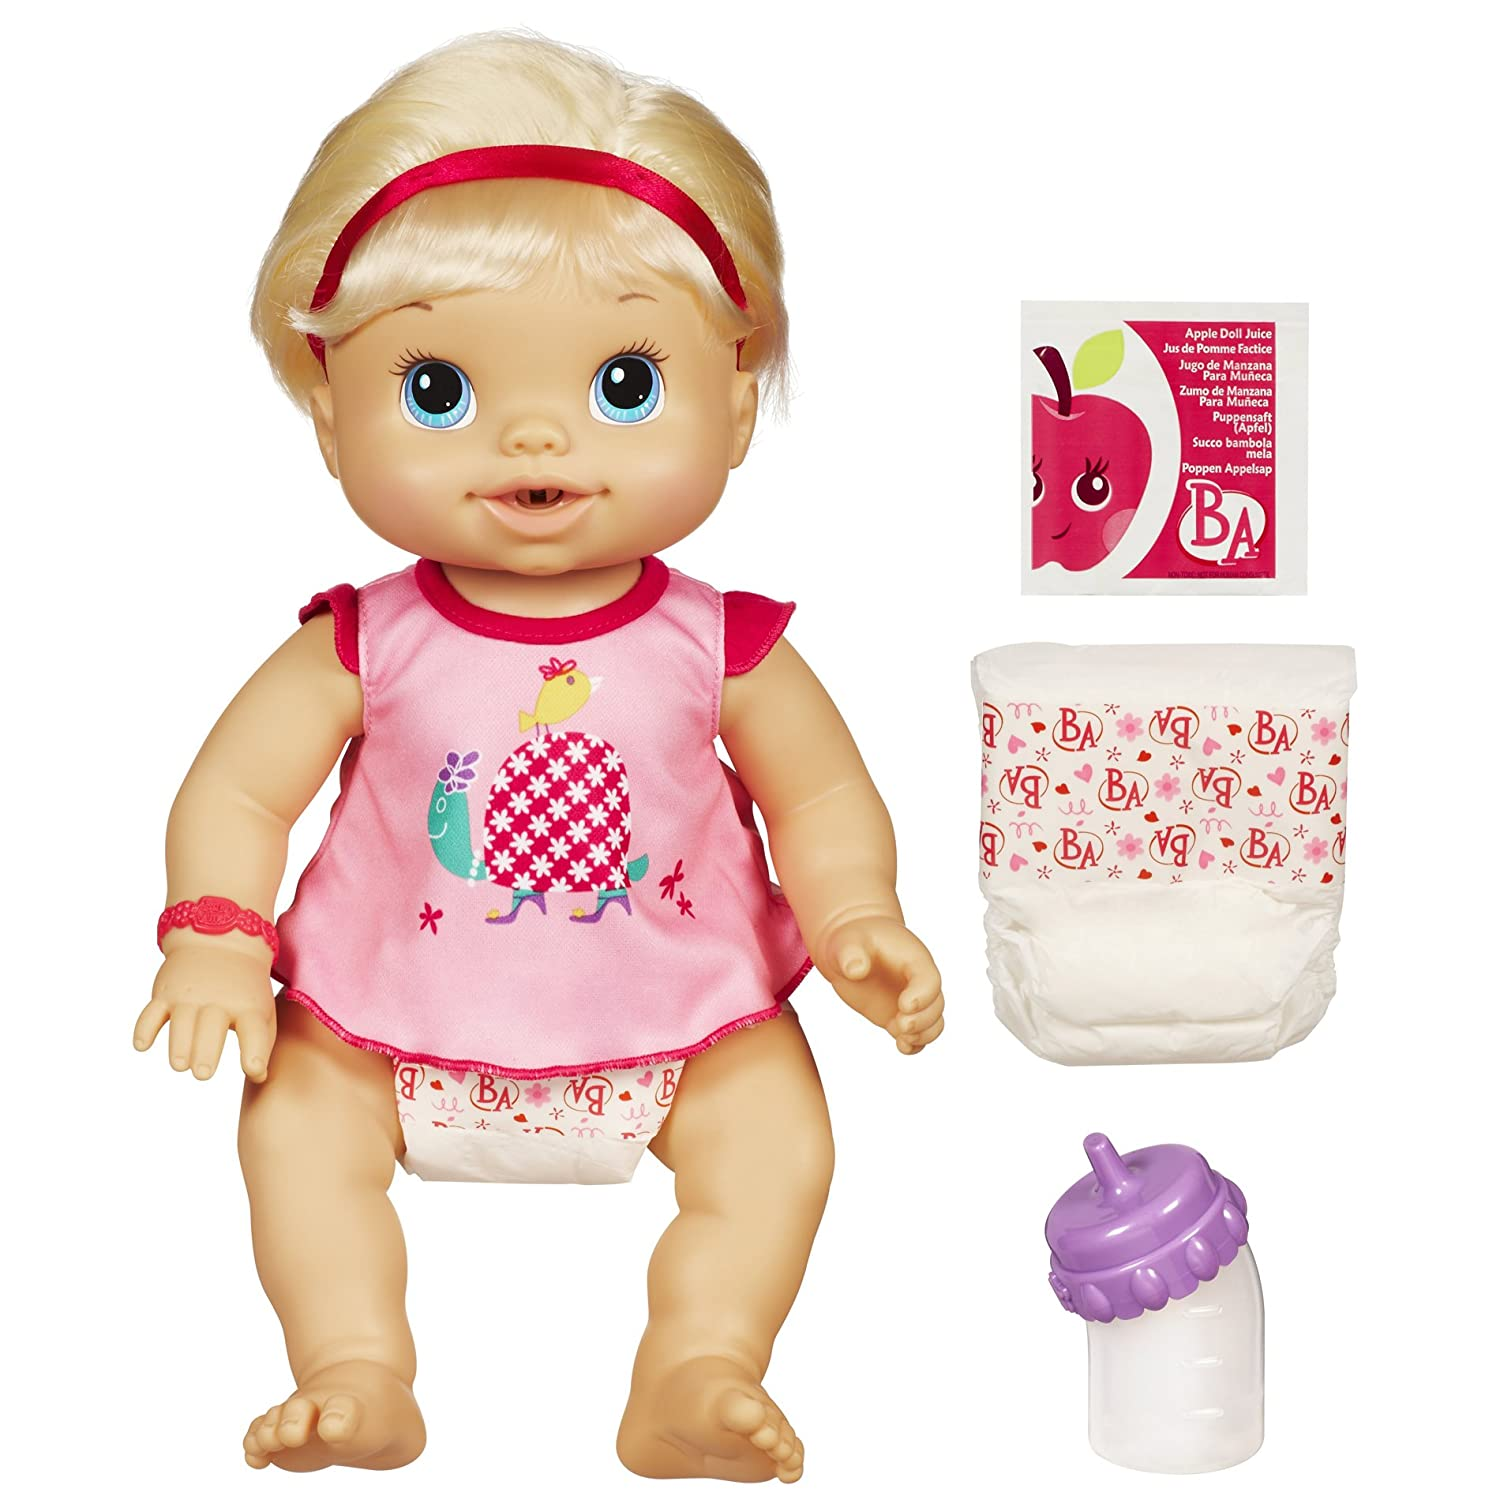 Baby Alive Wets And Wiggles Blonde Amazon Toys & Games